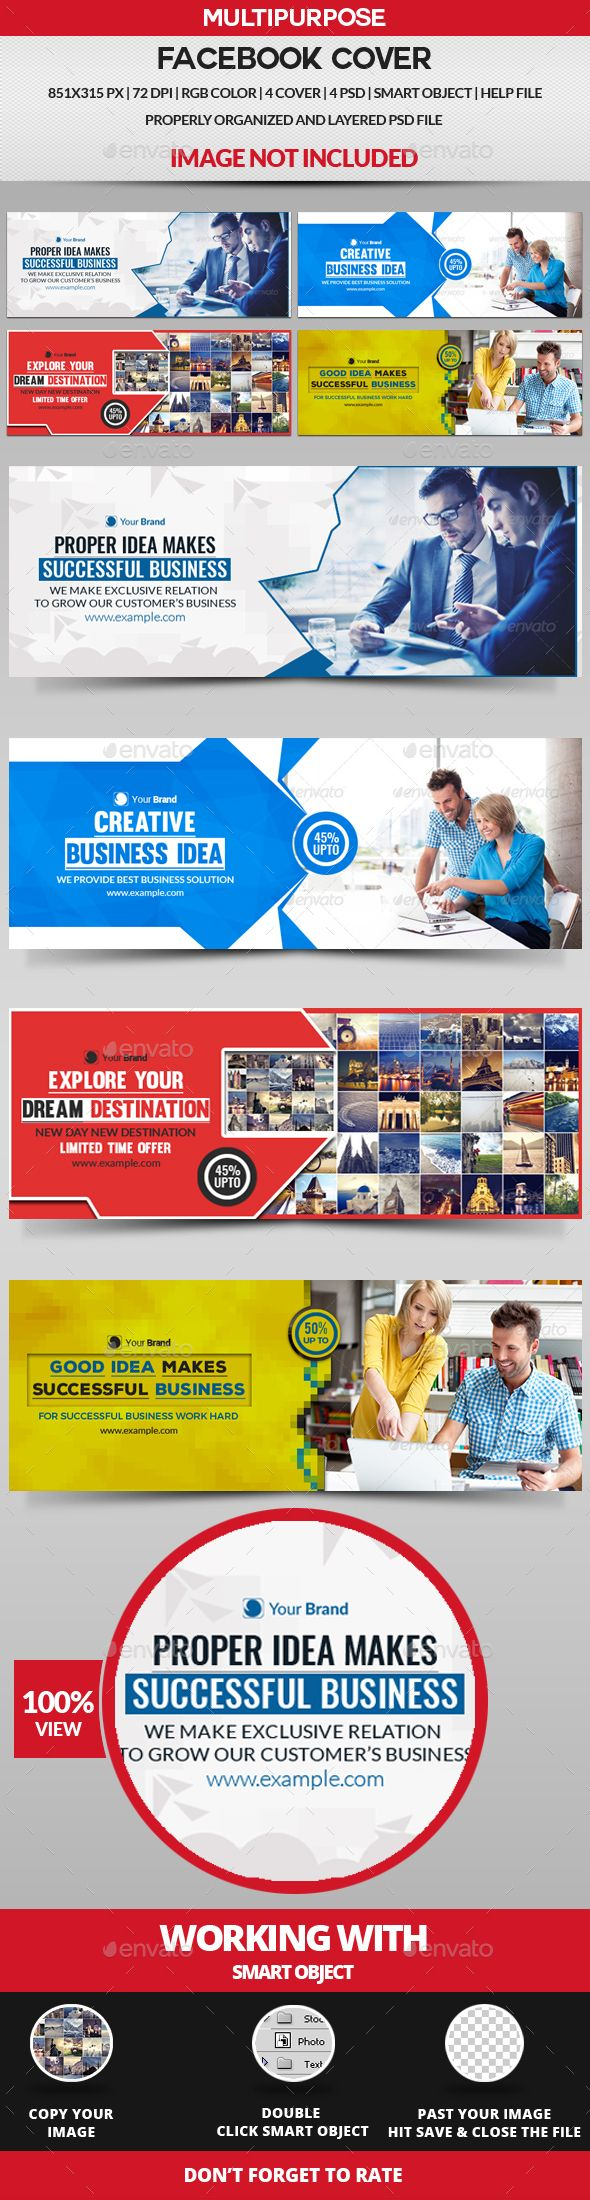 best ideas about facebook cover design facebook facebook cover 4 design